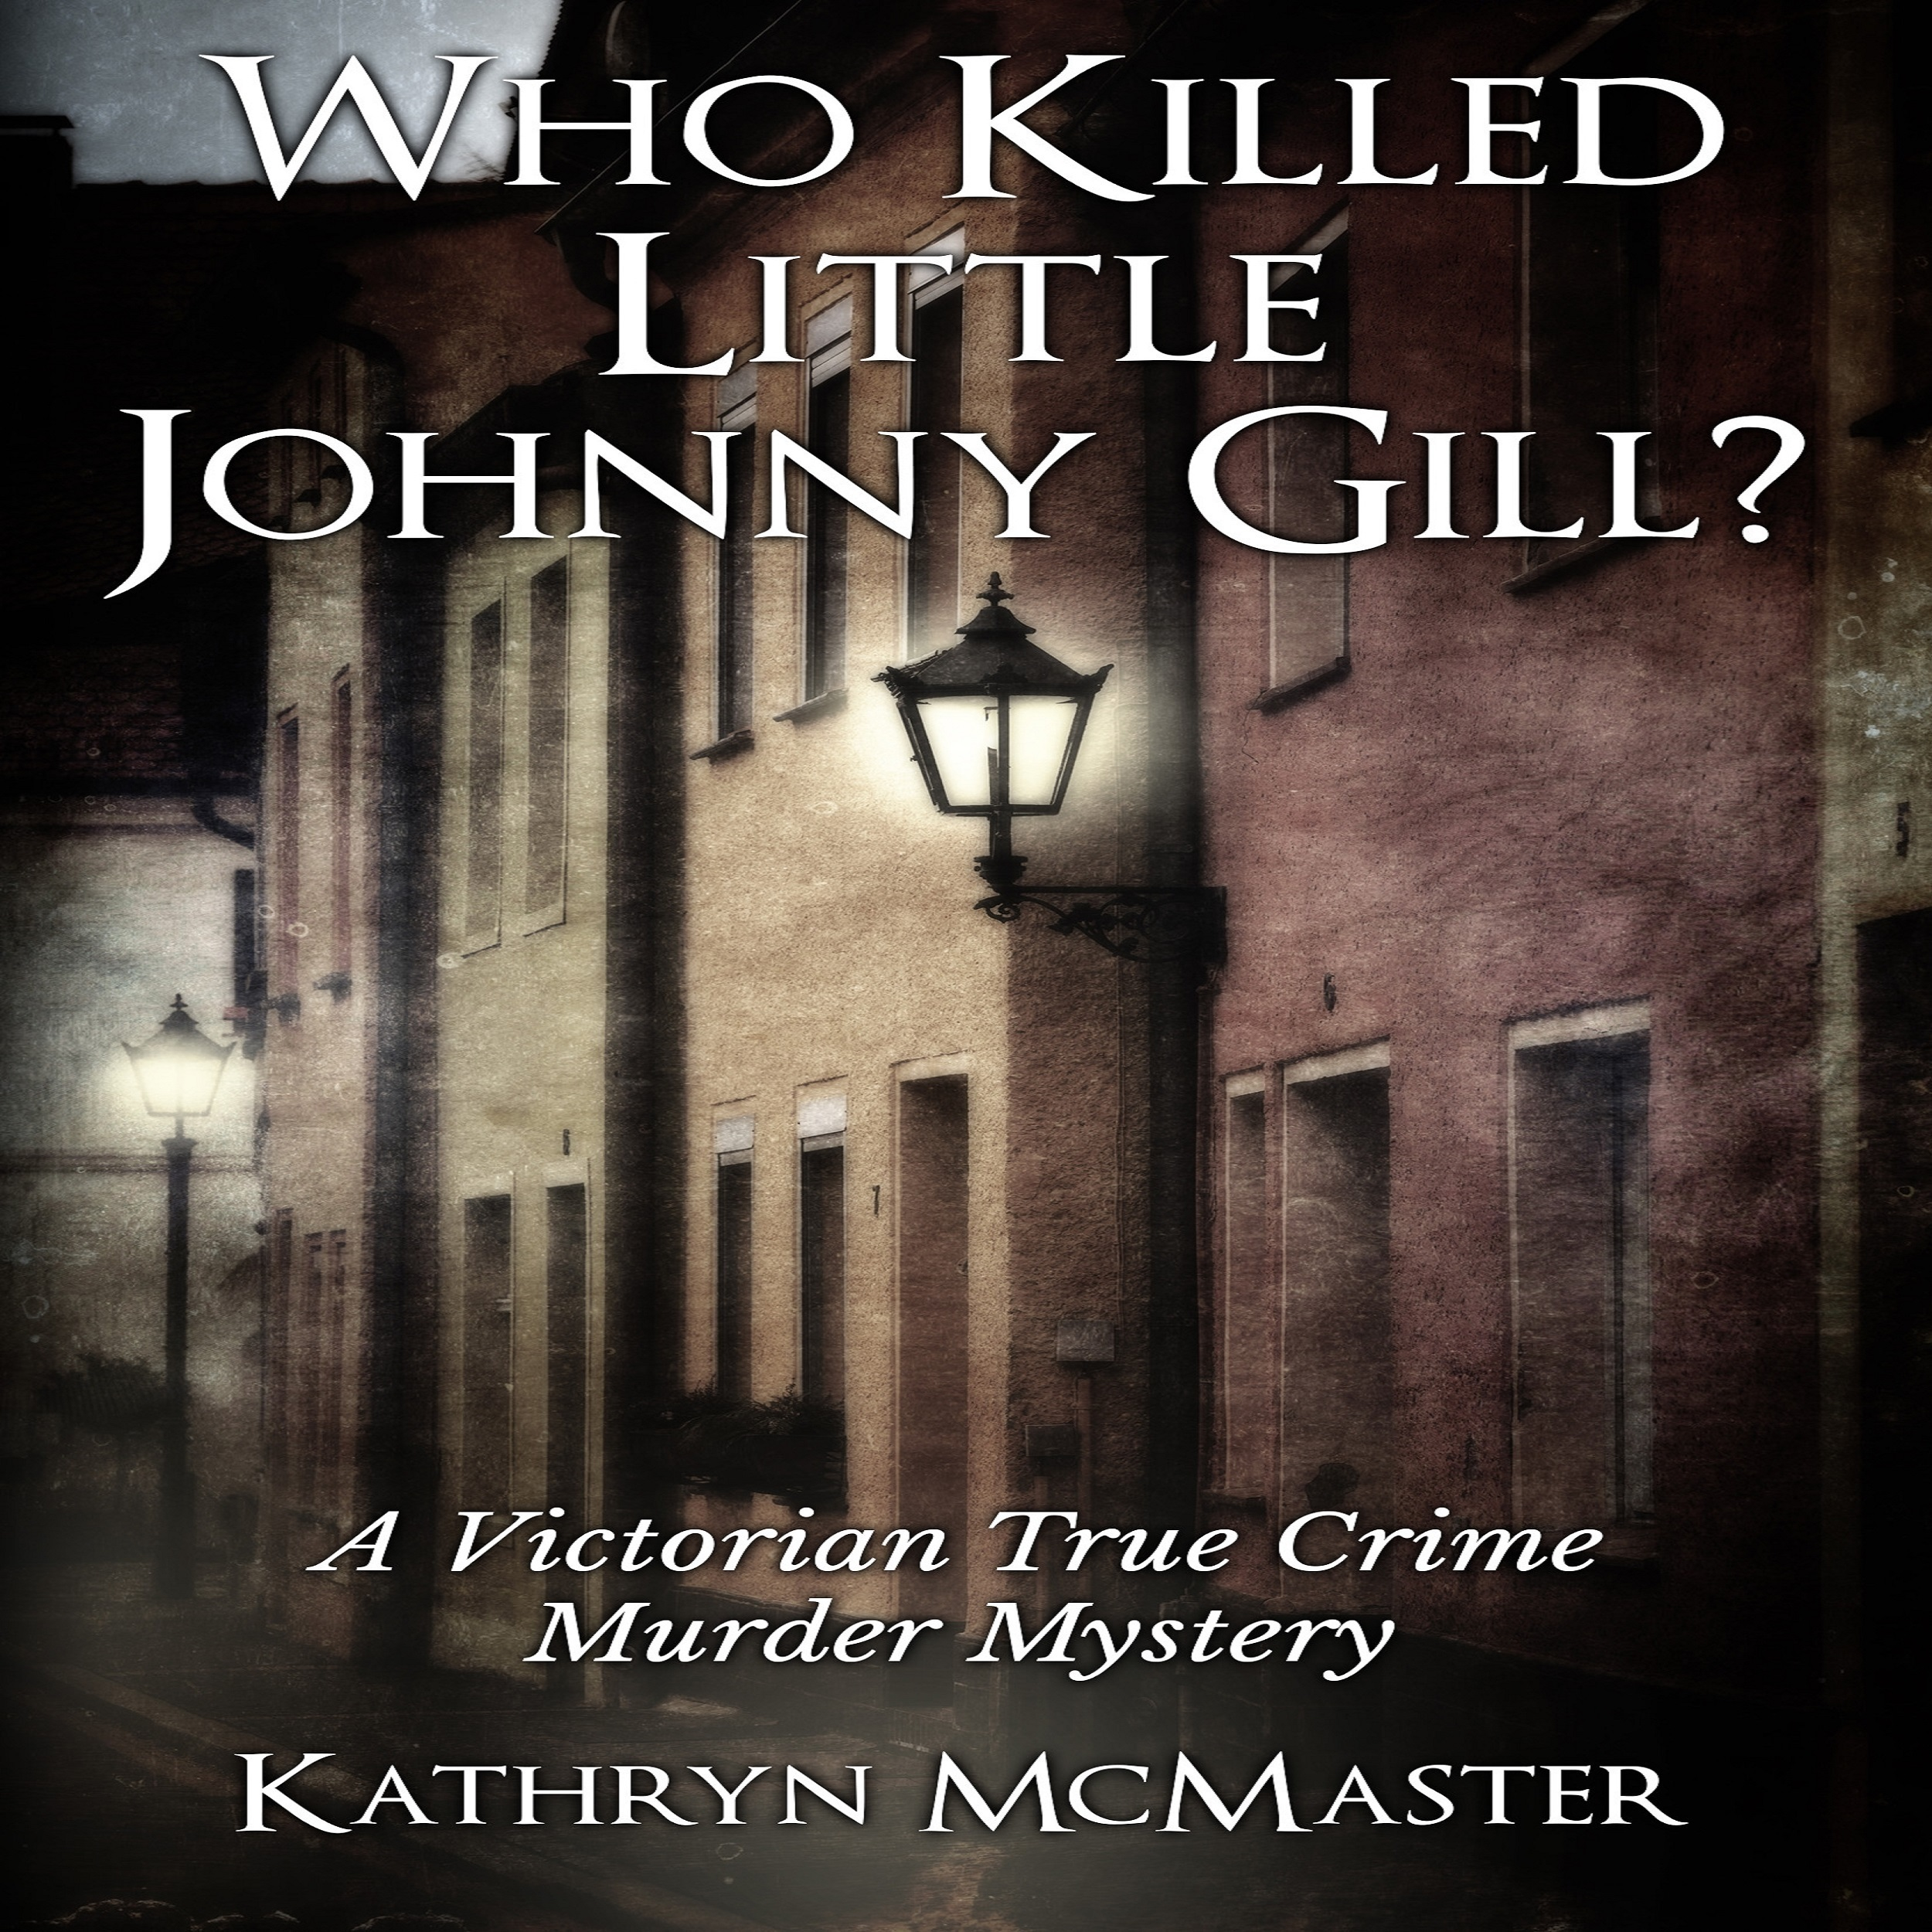 Printable Who Killed Little Johnny Gill?: A Victorian True Crime Murder Mystery Audiobook Cover Art